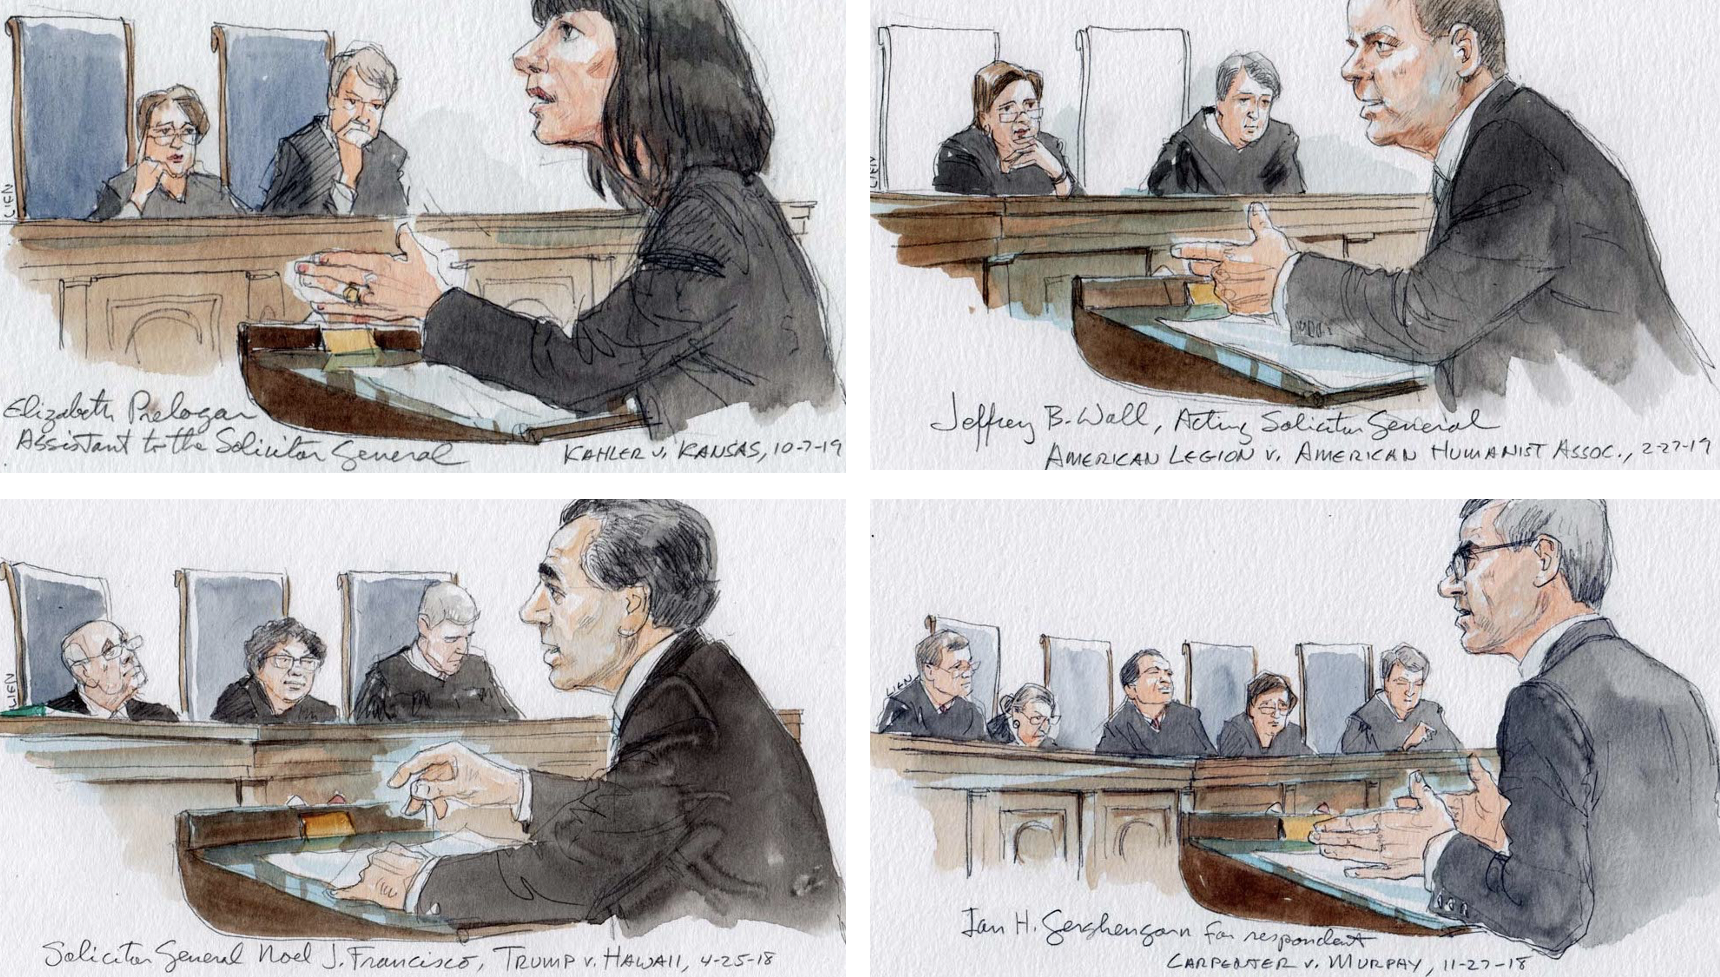 photo array showing individual sketches of one woman and three men arguing before justices